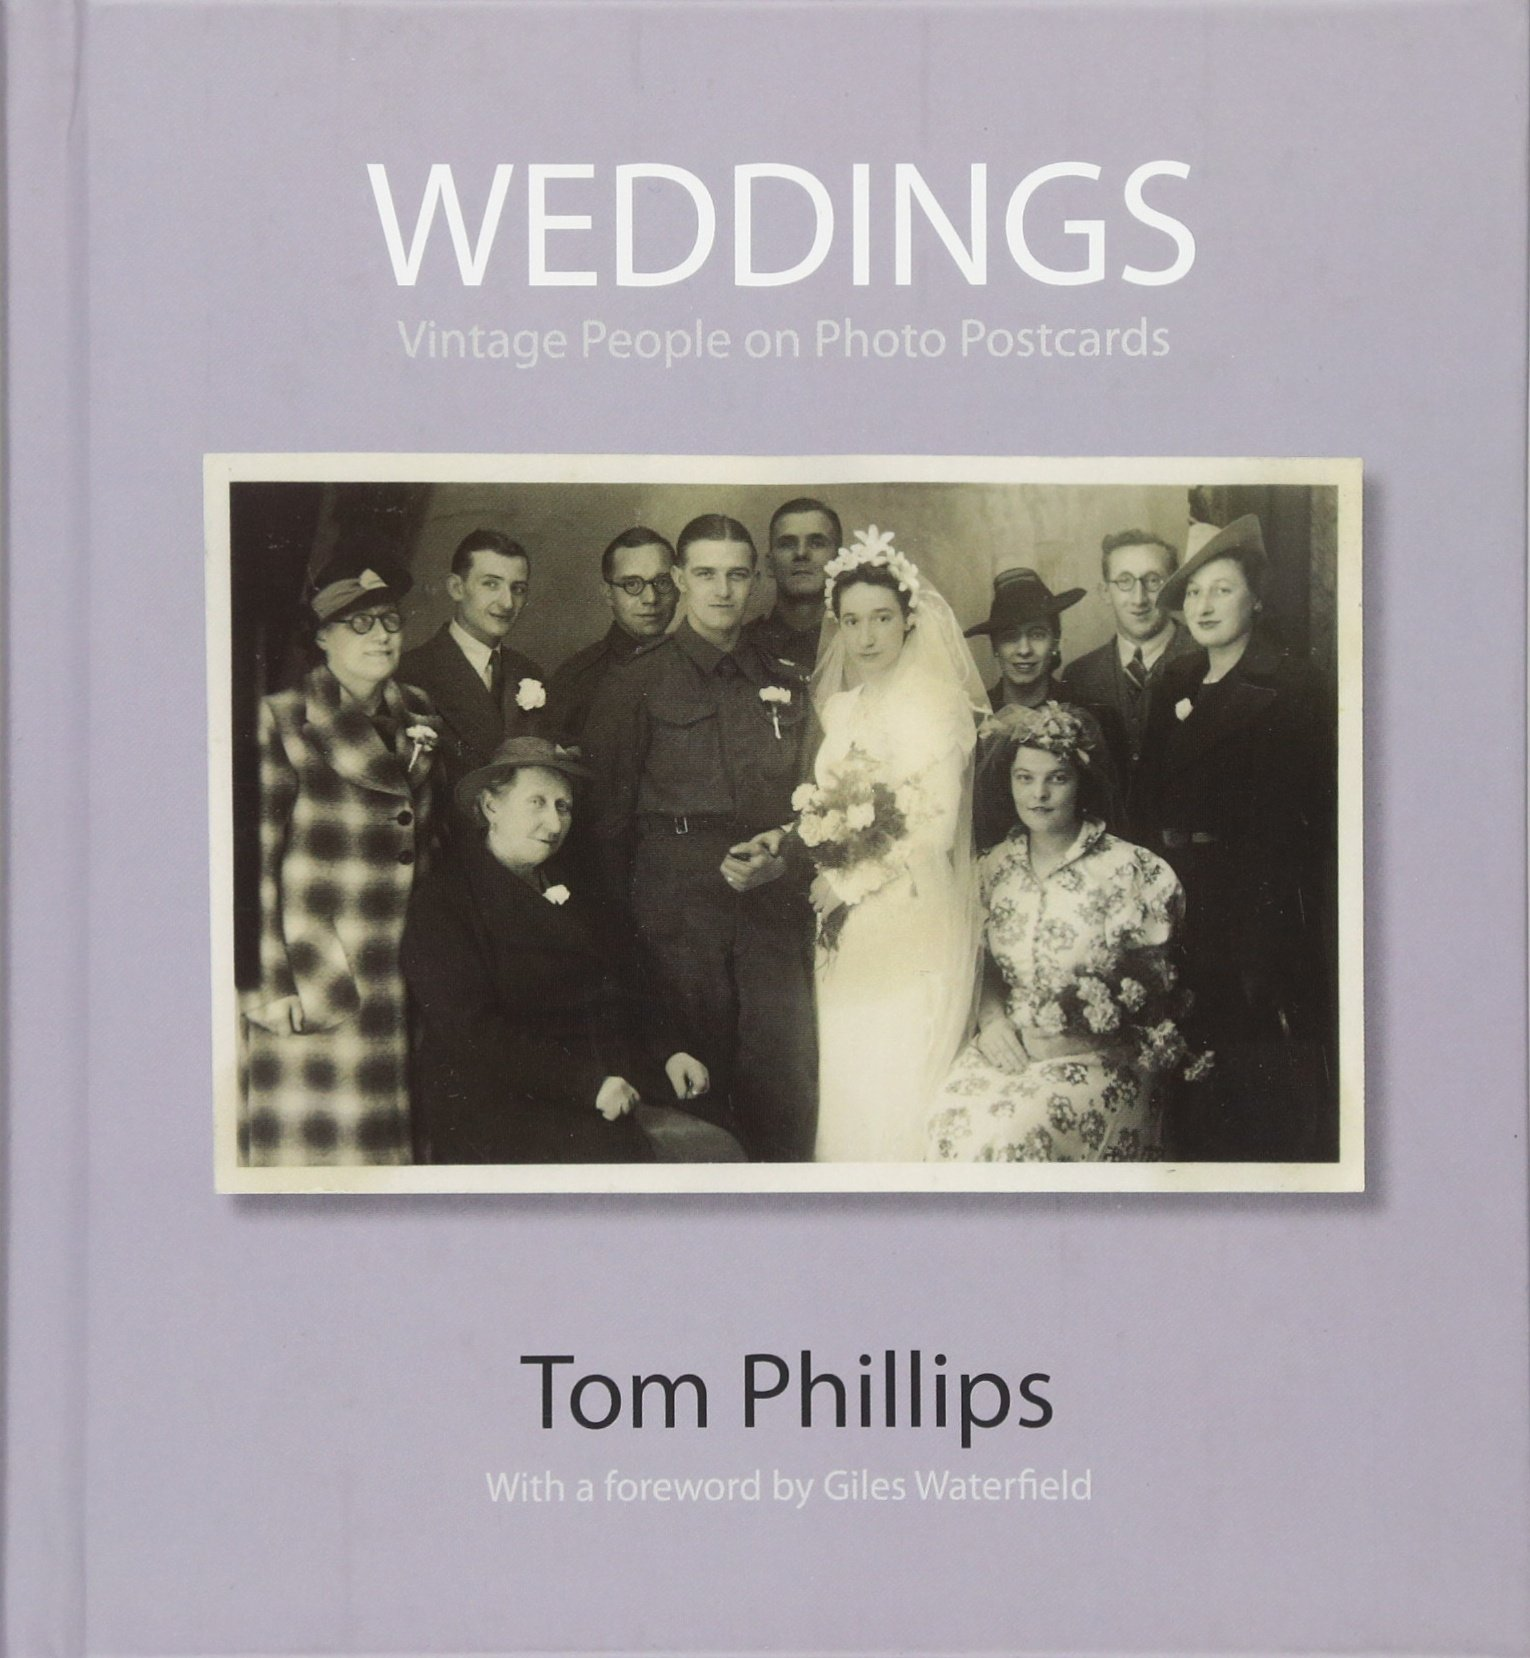 Weddings: Vintage People on Photo Postcards (Photo Postcards from the Tom Phillips Archive)